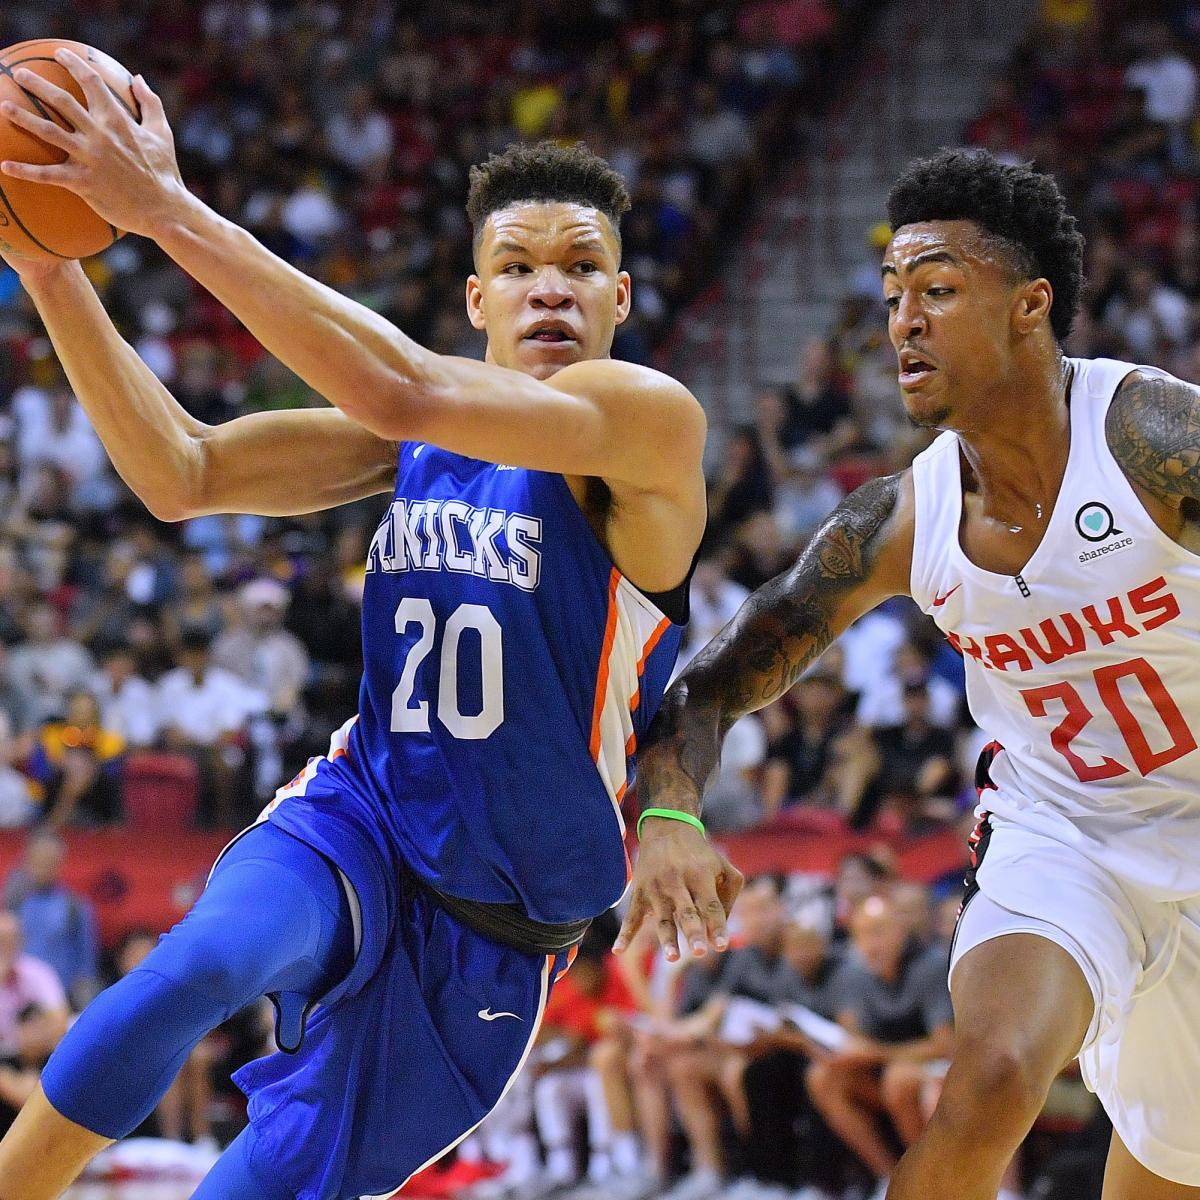 NBA Summer League 2018: Sunday Schedule, Latest Las Vegas Standings and Stats